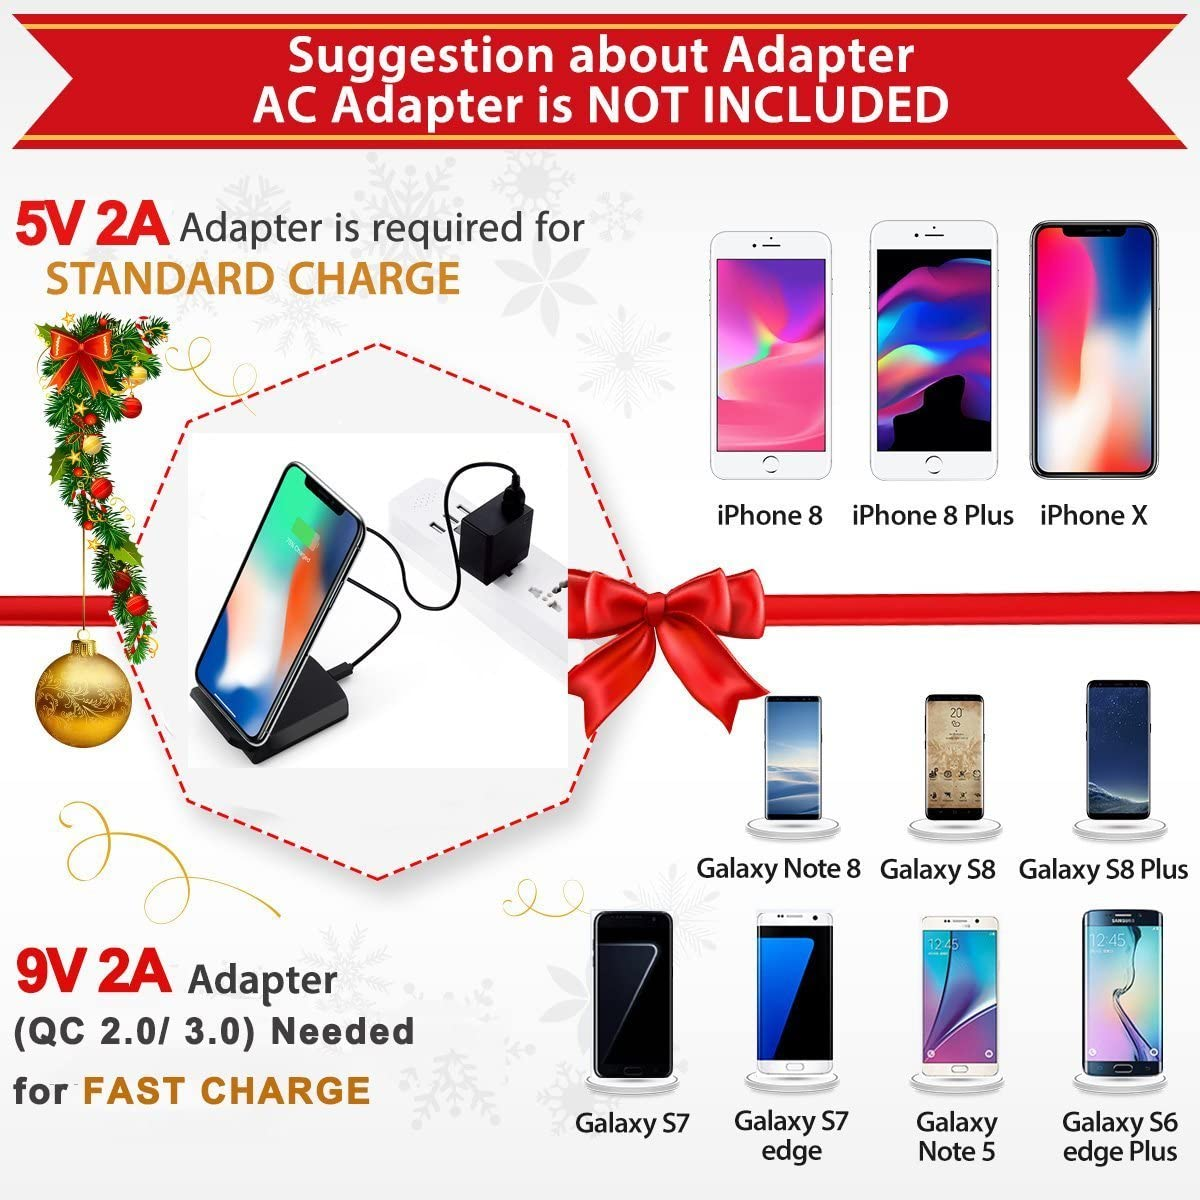 Wireless Charger Compatible with iPhone X//8//8 Plus,Qi Fast Wireless Charging Pad for Samsung Galaxy Note 8 S8 S8 Plus S7 S7 Edge Note 5 S6 Edge Plus and other Smartphone Devices【No AC Adapter】